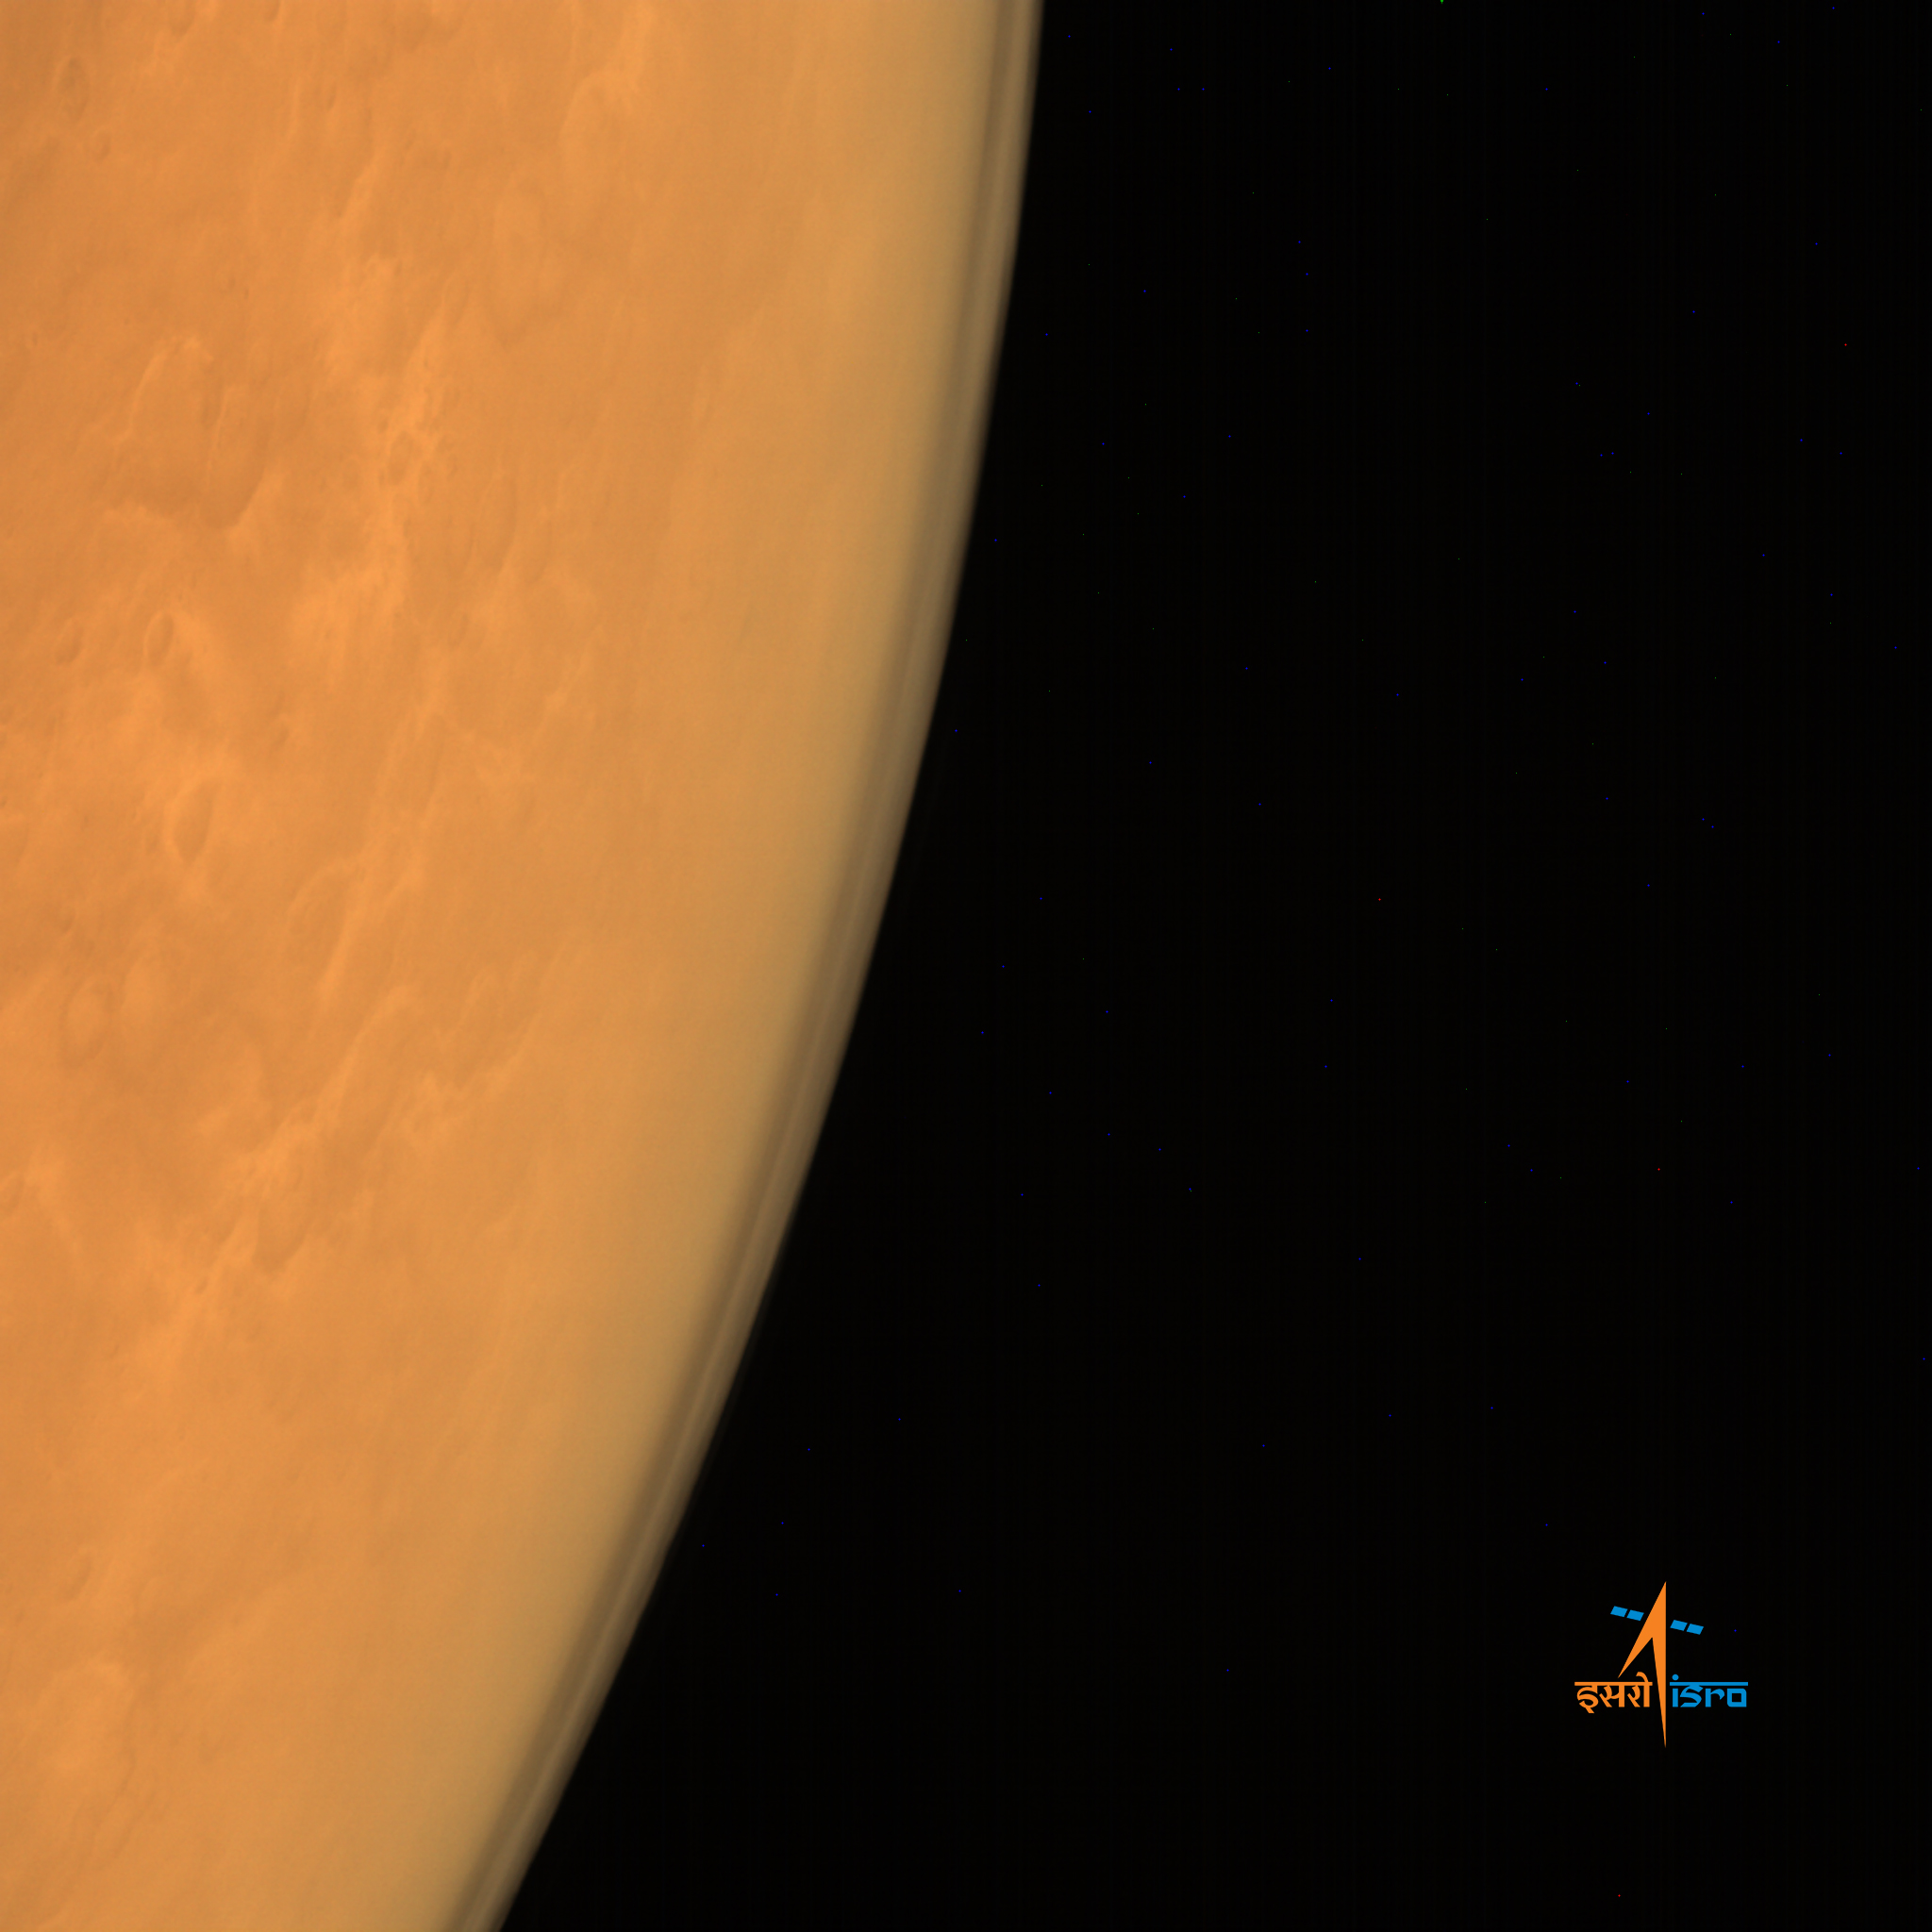 A view through the thin Martian atmosphere.